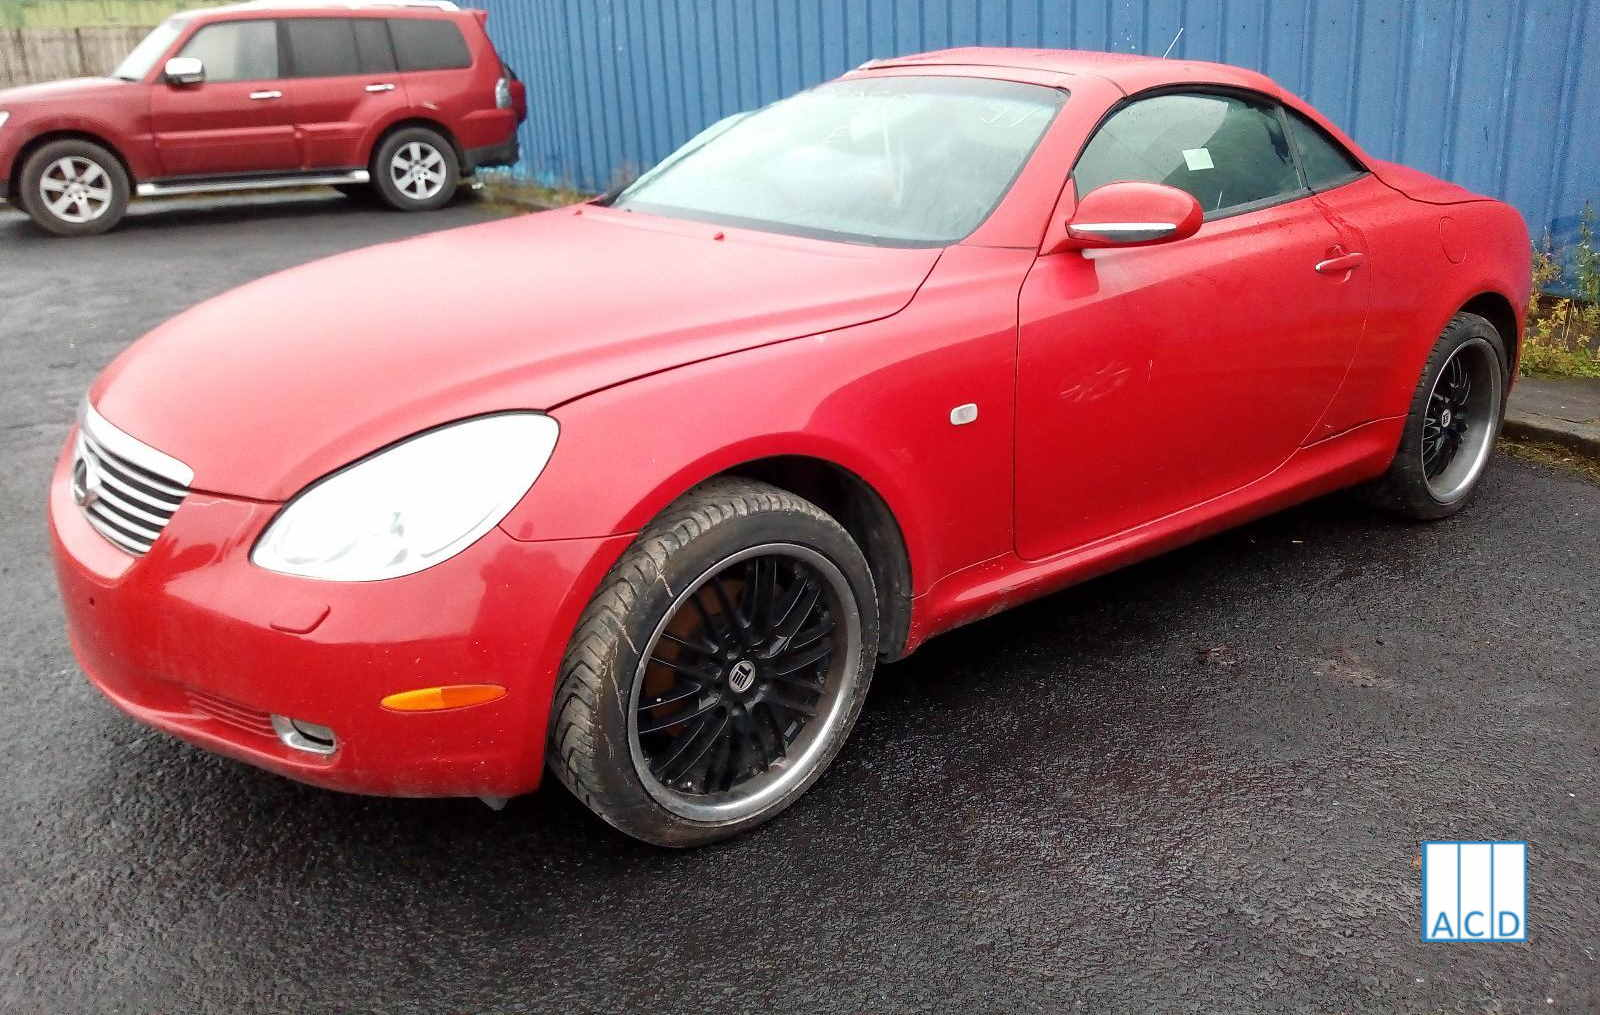 Lexus SC430 4.3L Petrol 5-speed automatic 2001 #3246 01